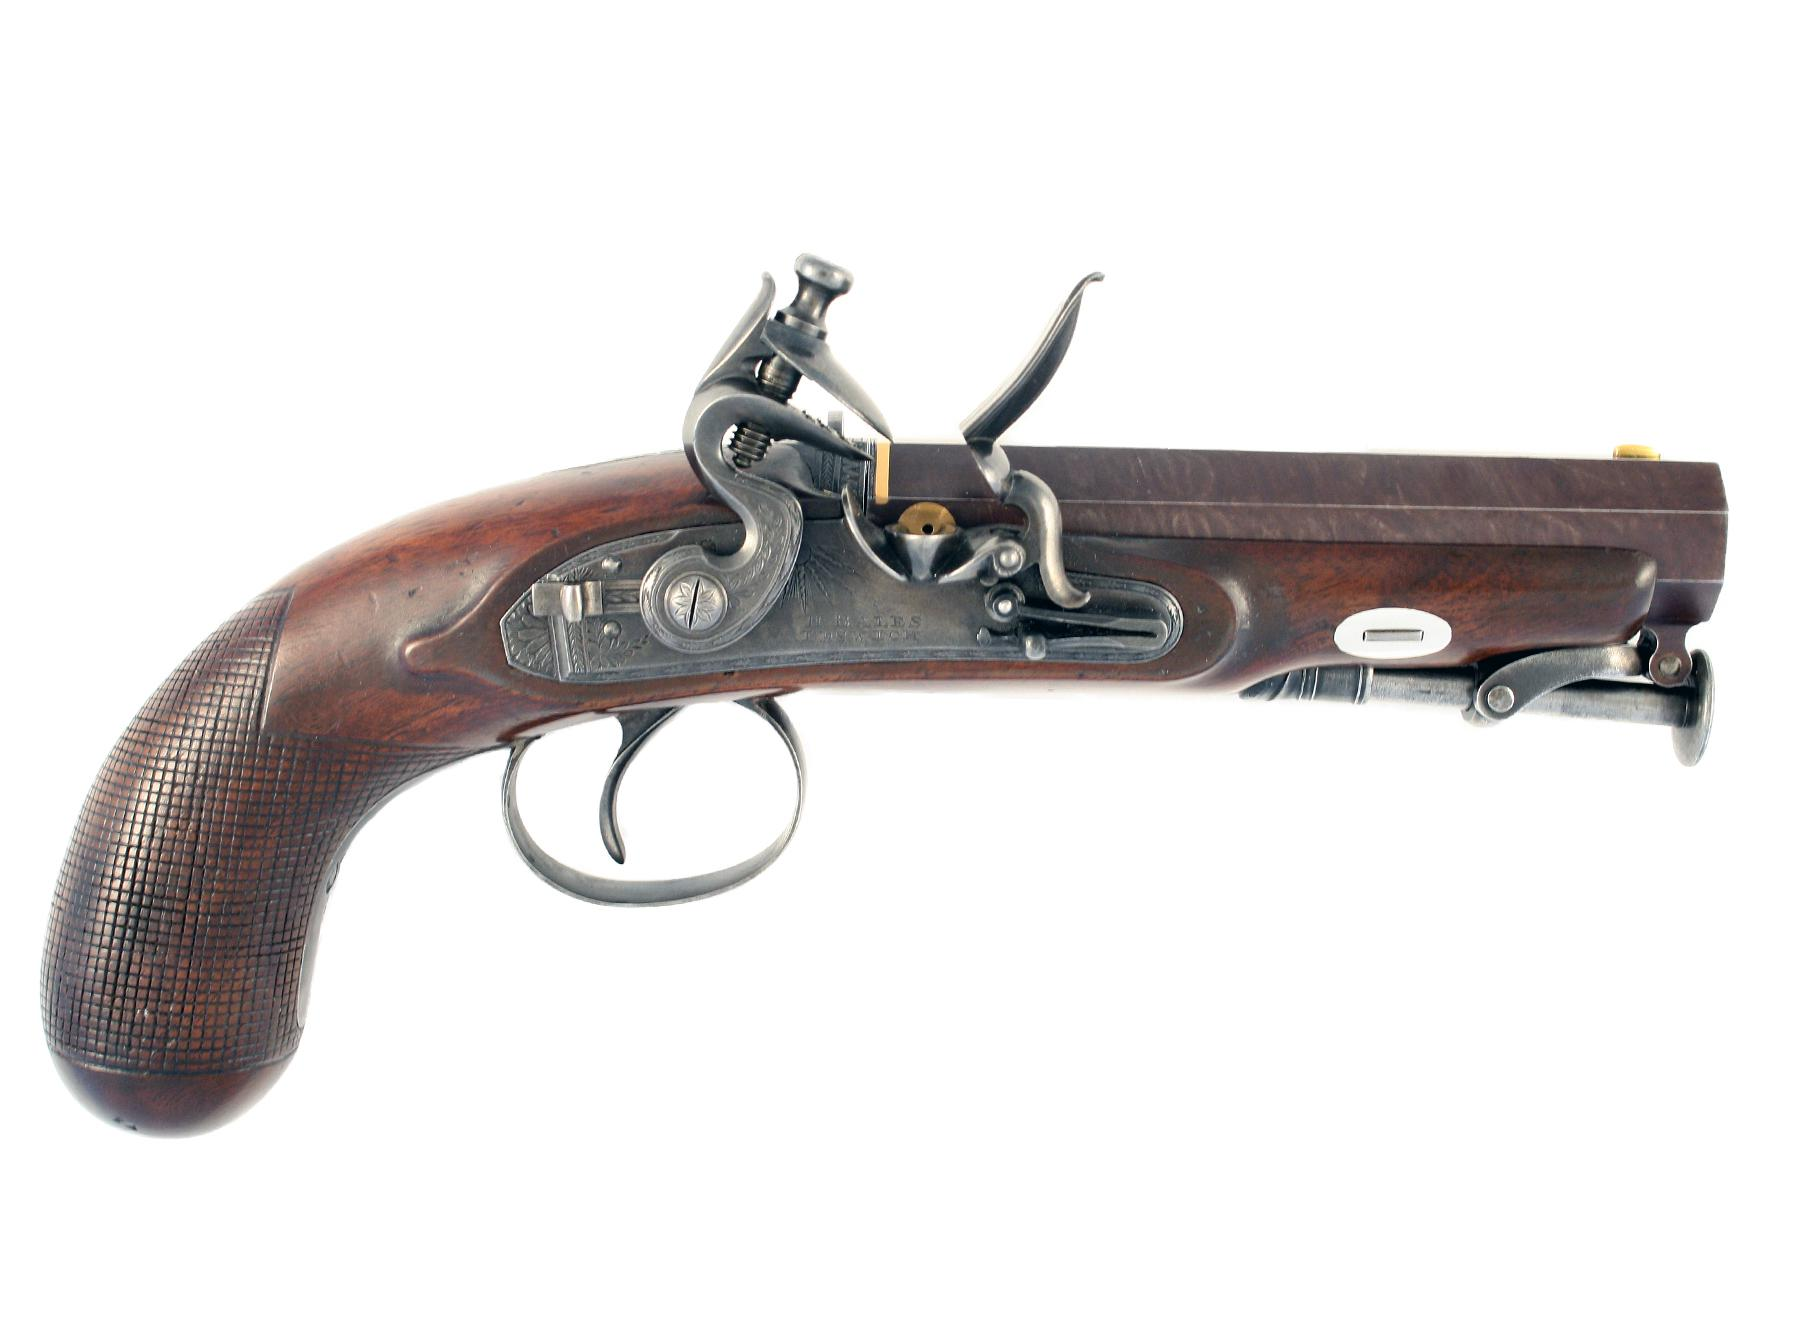 An Overcoat Pistol